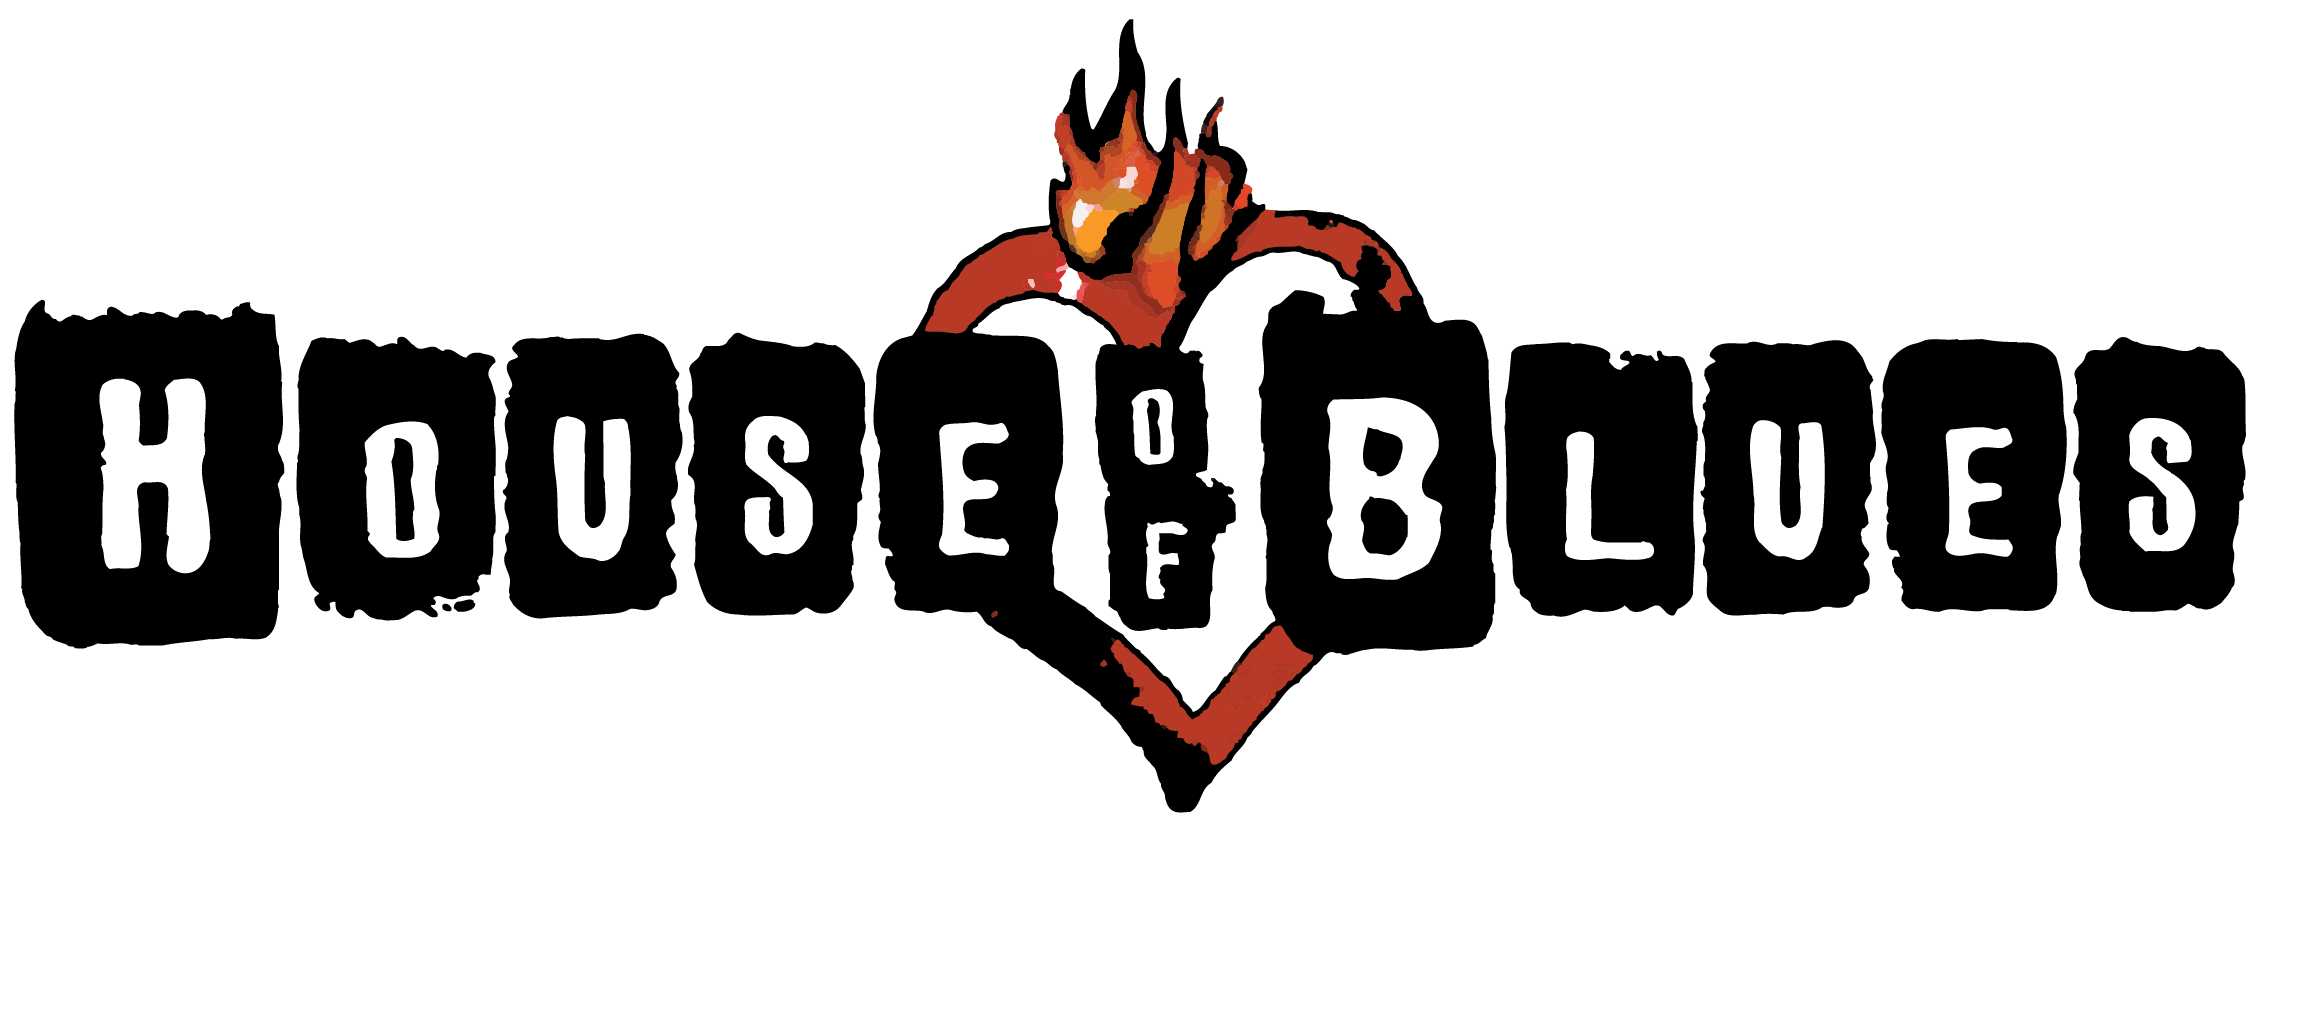 House Of Blues Music Forward Foundation Launches